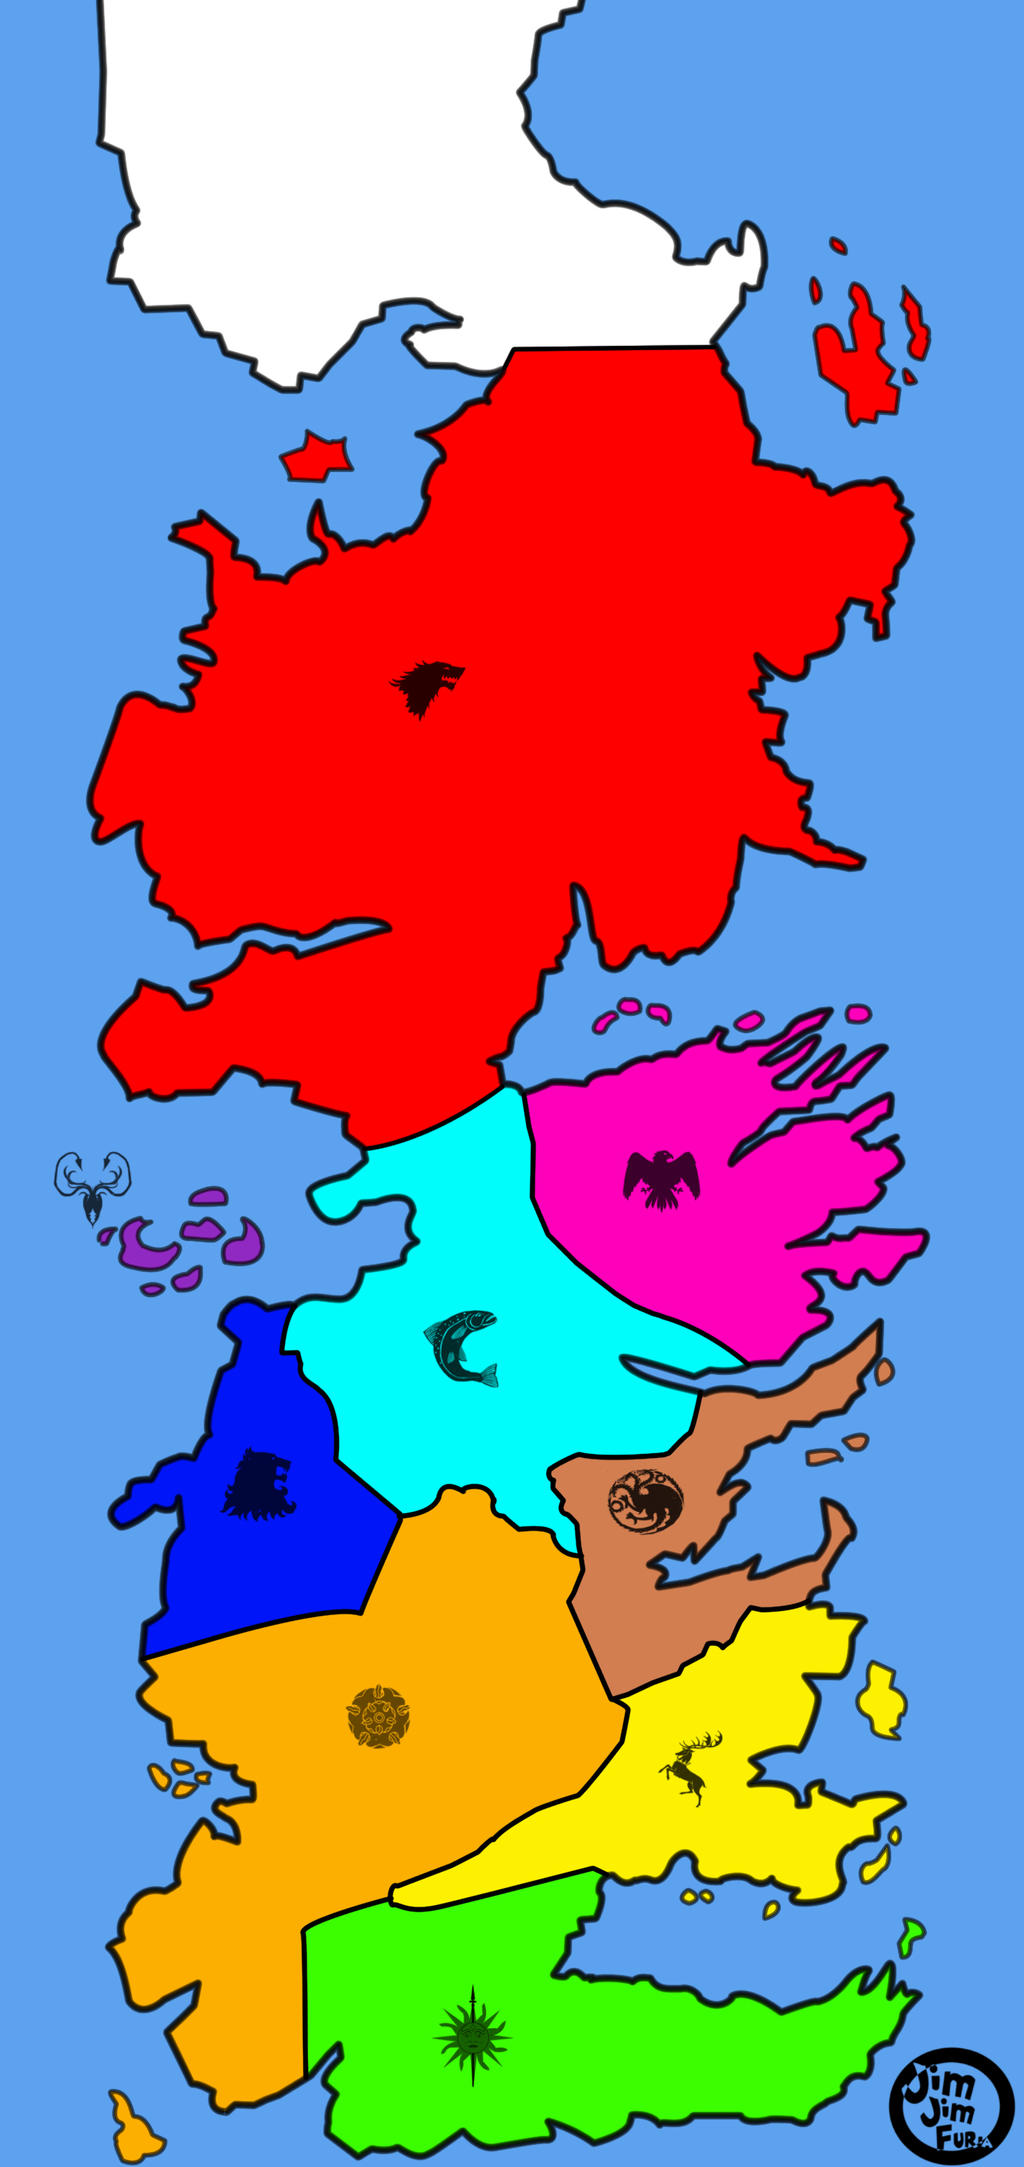 Westeros Map By Jimjimfuria1 On Deviantart